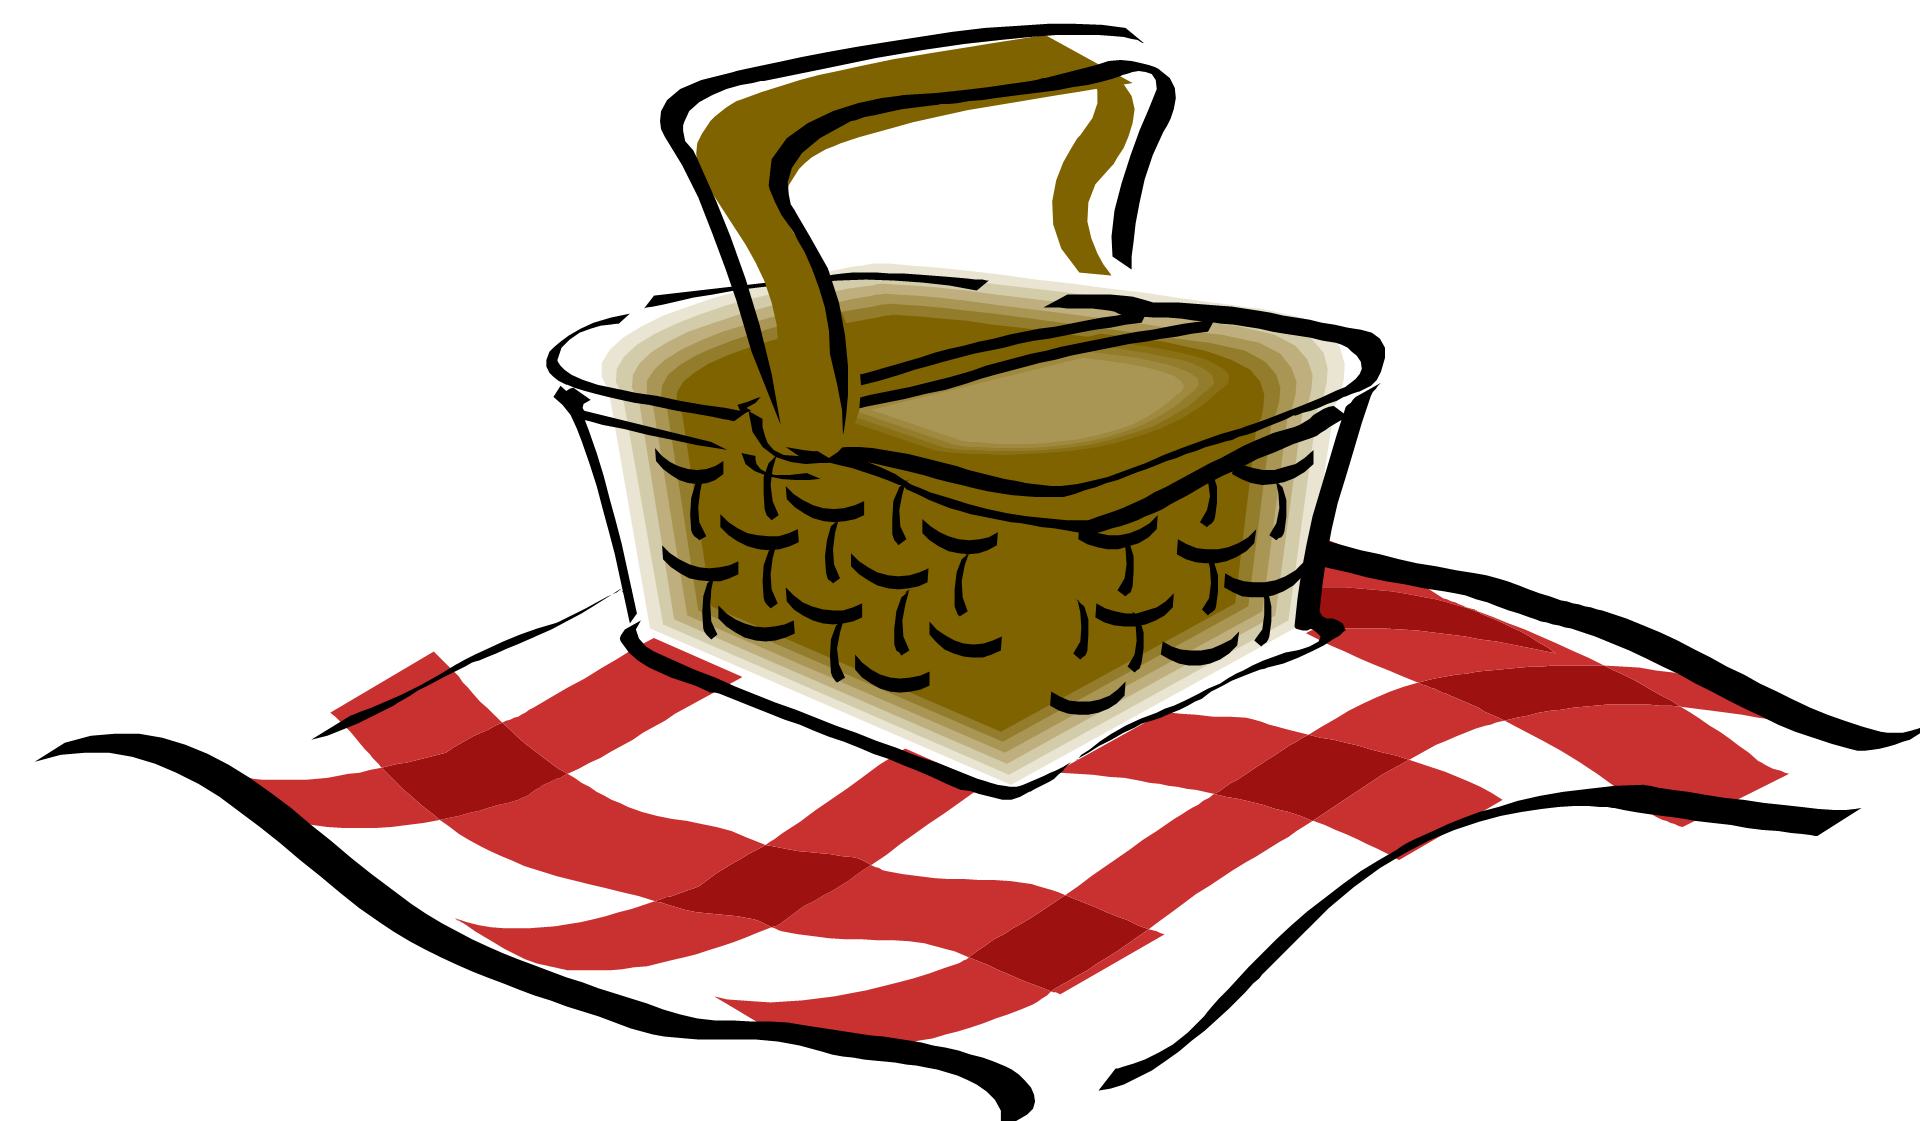 black and white library  collection of transparent. Picnic clipart.